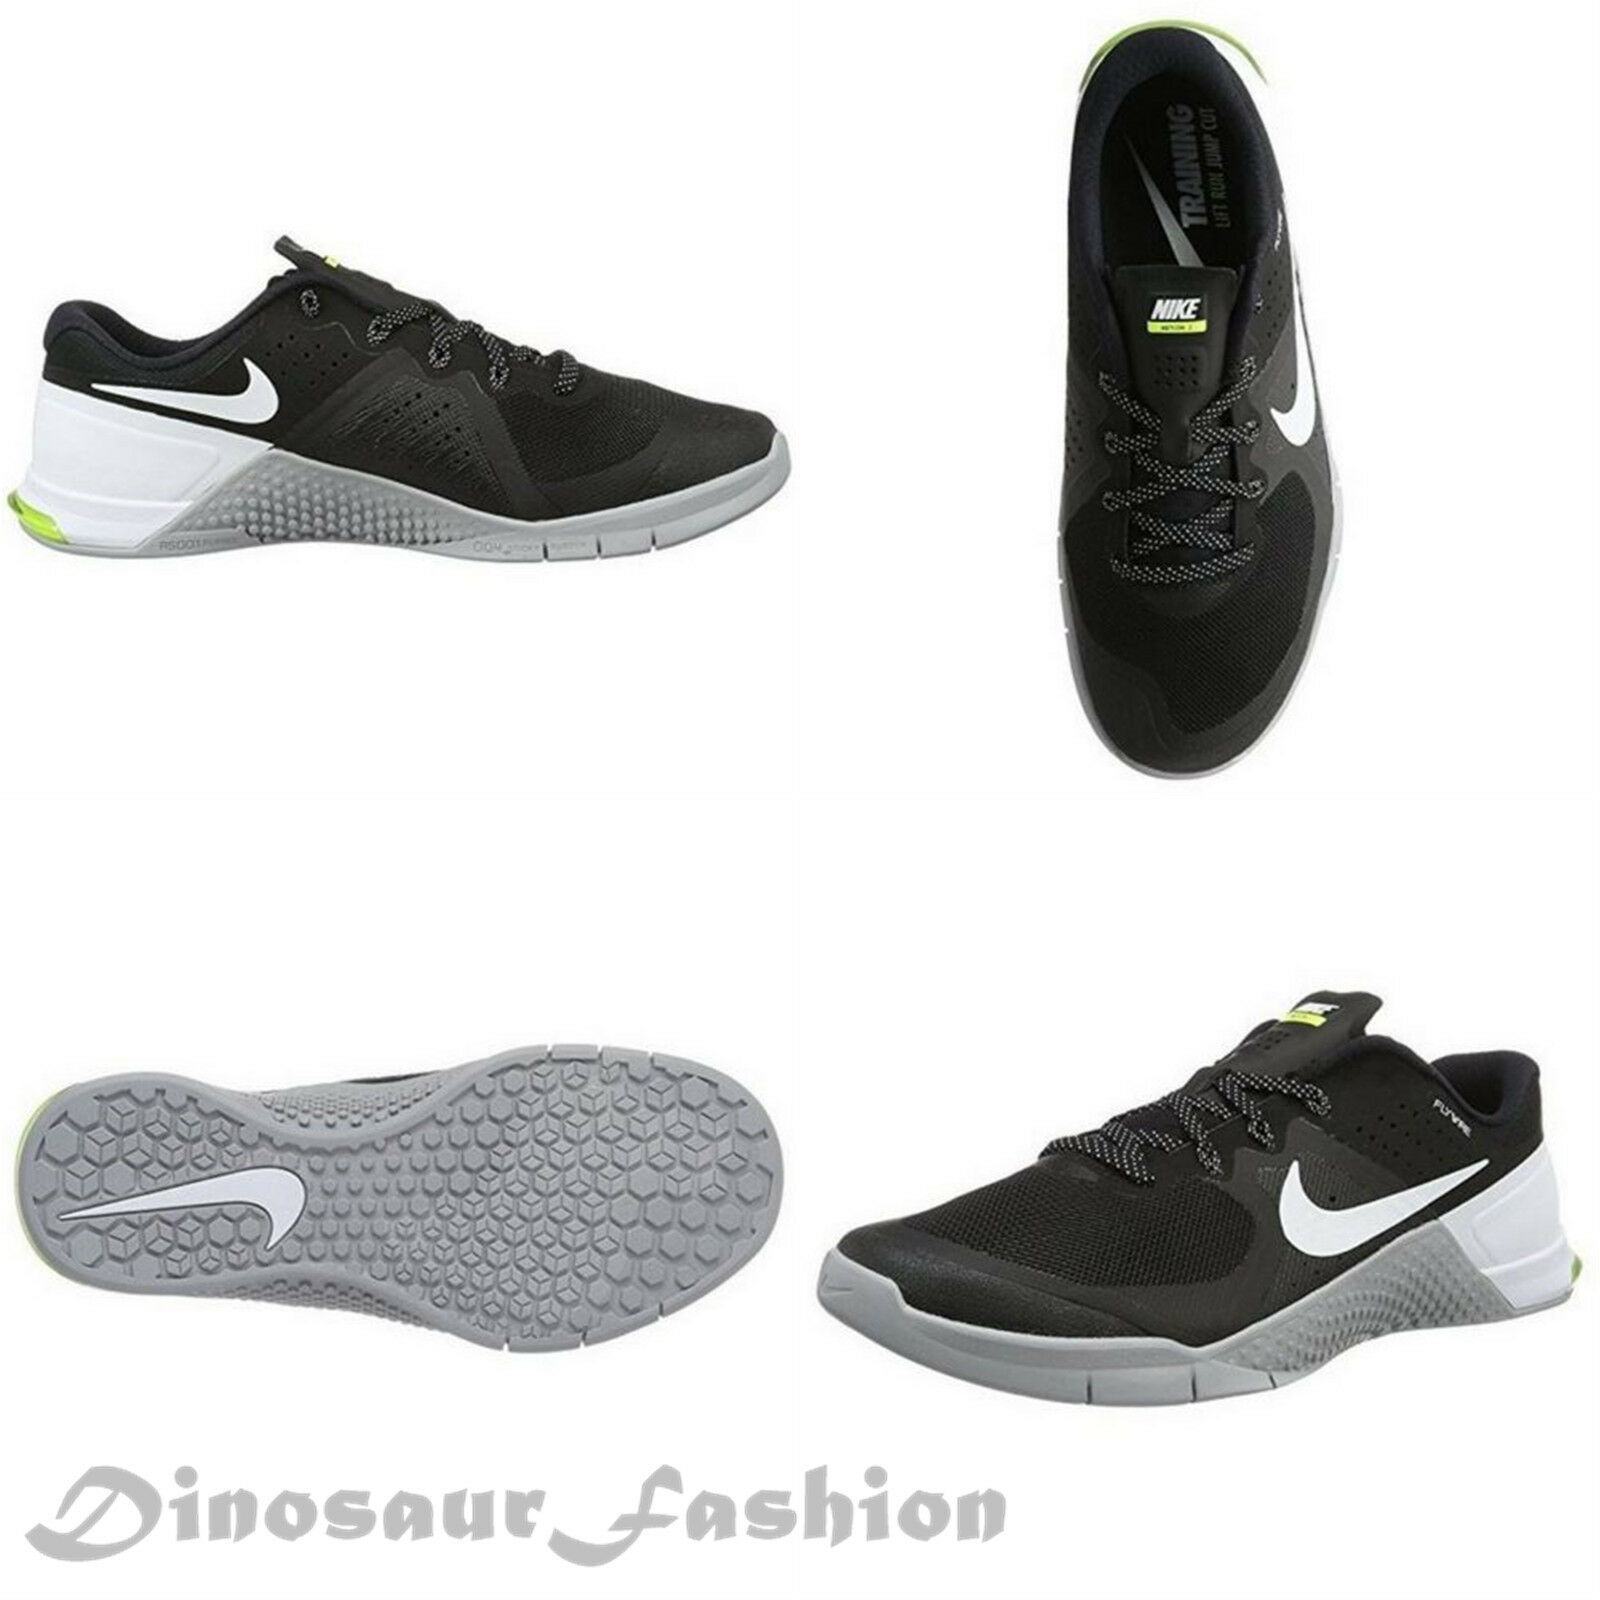 NIKE METCON 2 <819899-001) Training Shoes  New with box,NO LID